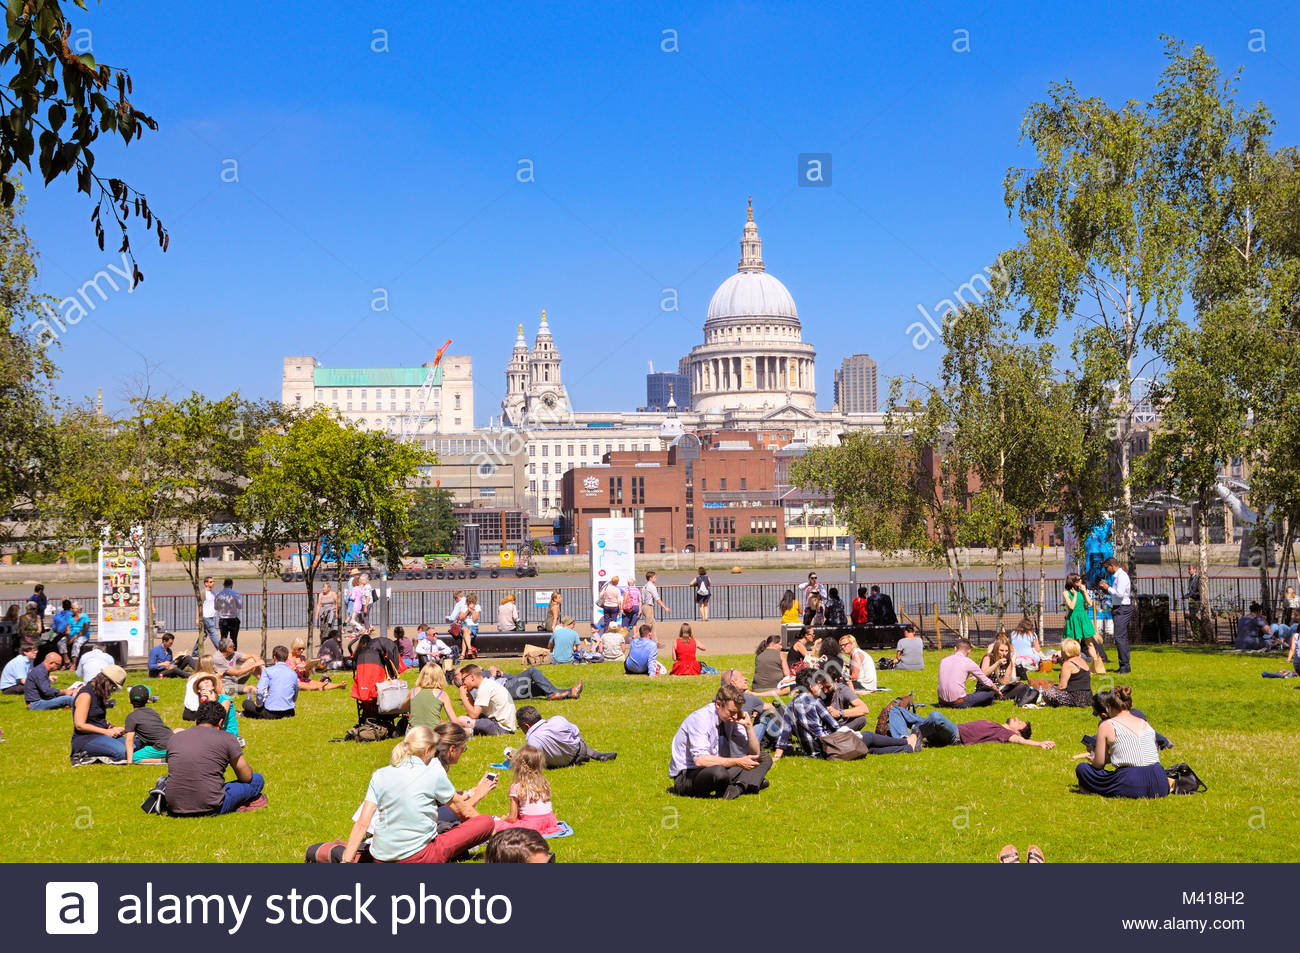 People relaxing in Tate Modern gardens opposite St Paul's Cathedral, London, England, UK Stock Photo